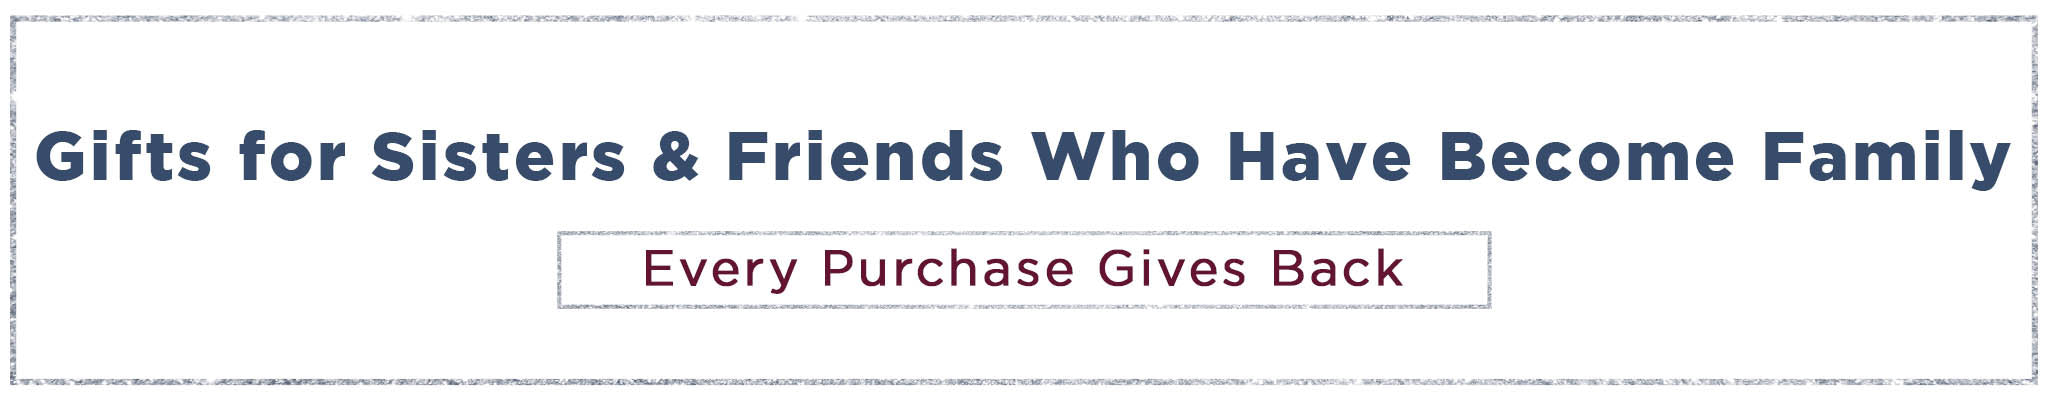 Gifts for sisters & friends who have become family   Every purchase gives back